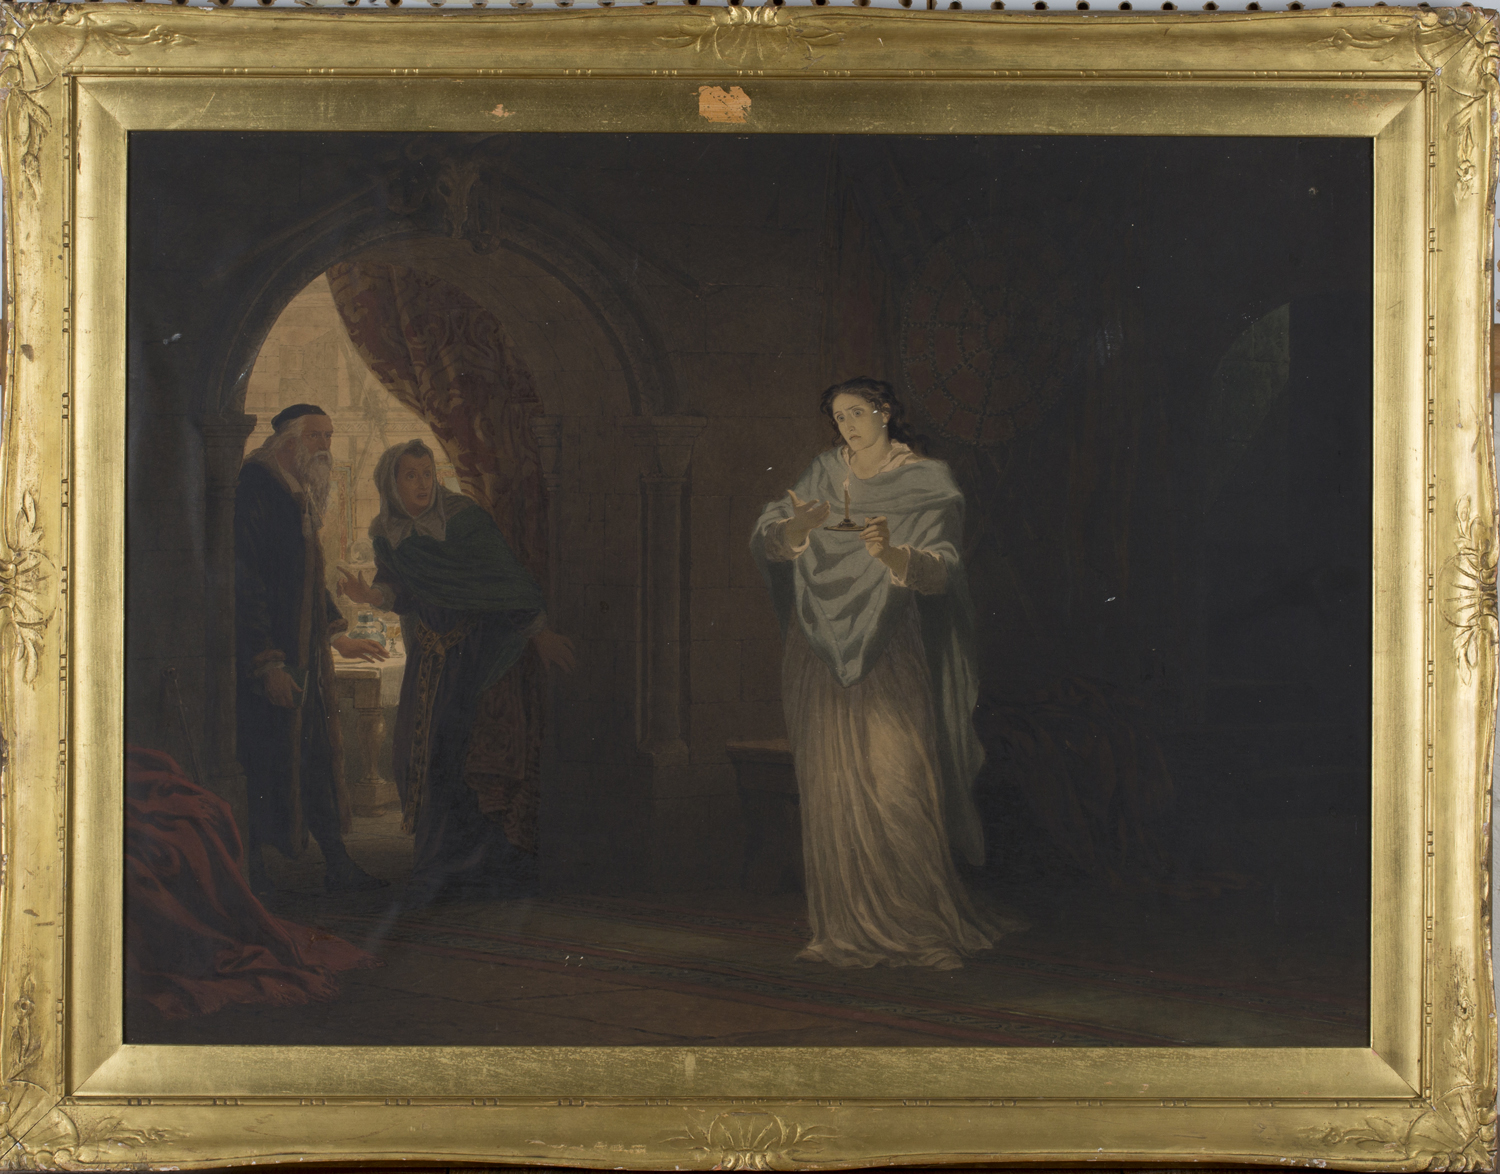 Lot 30 - Henry Anelay - 'A Scene from Macbeth', 19th century watercolour, signed recto, titled label verso,